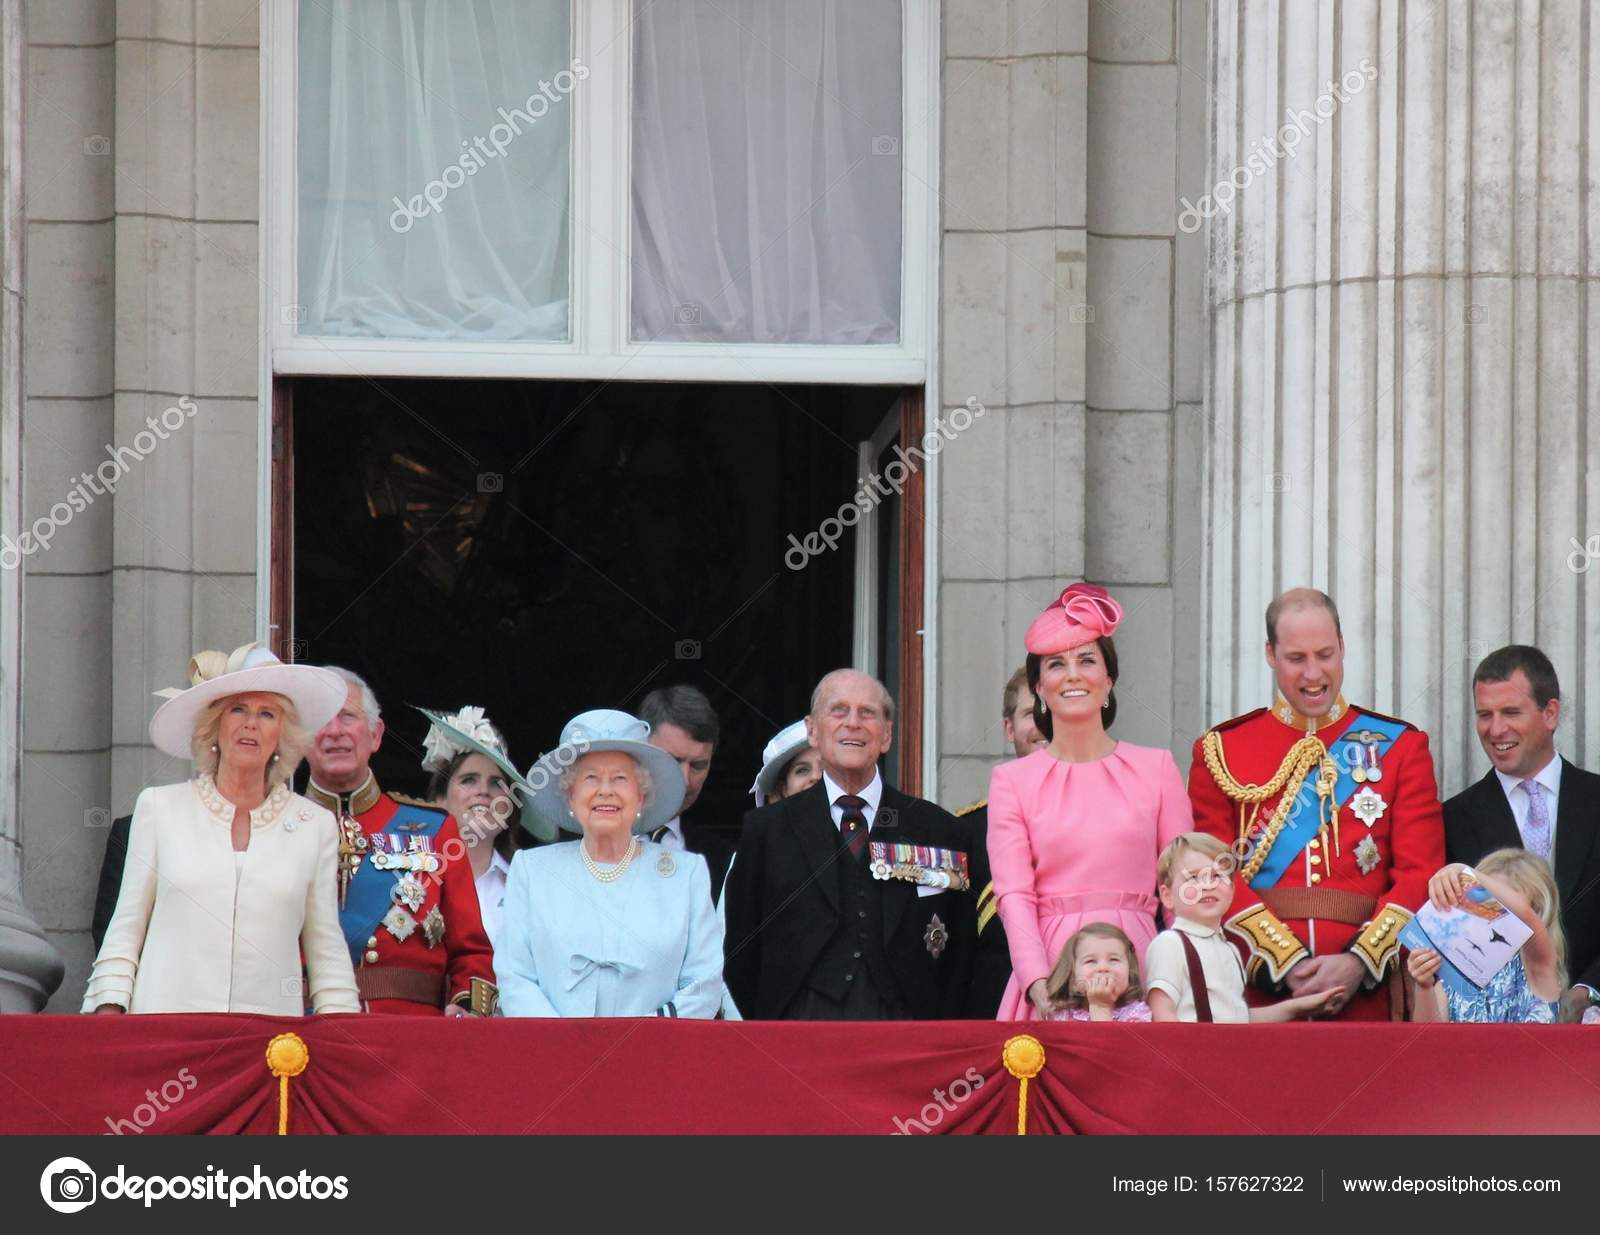 Queen Elizabeth Konigsfamilie Buckingham Palace London Juni 2017